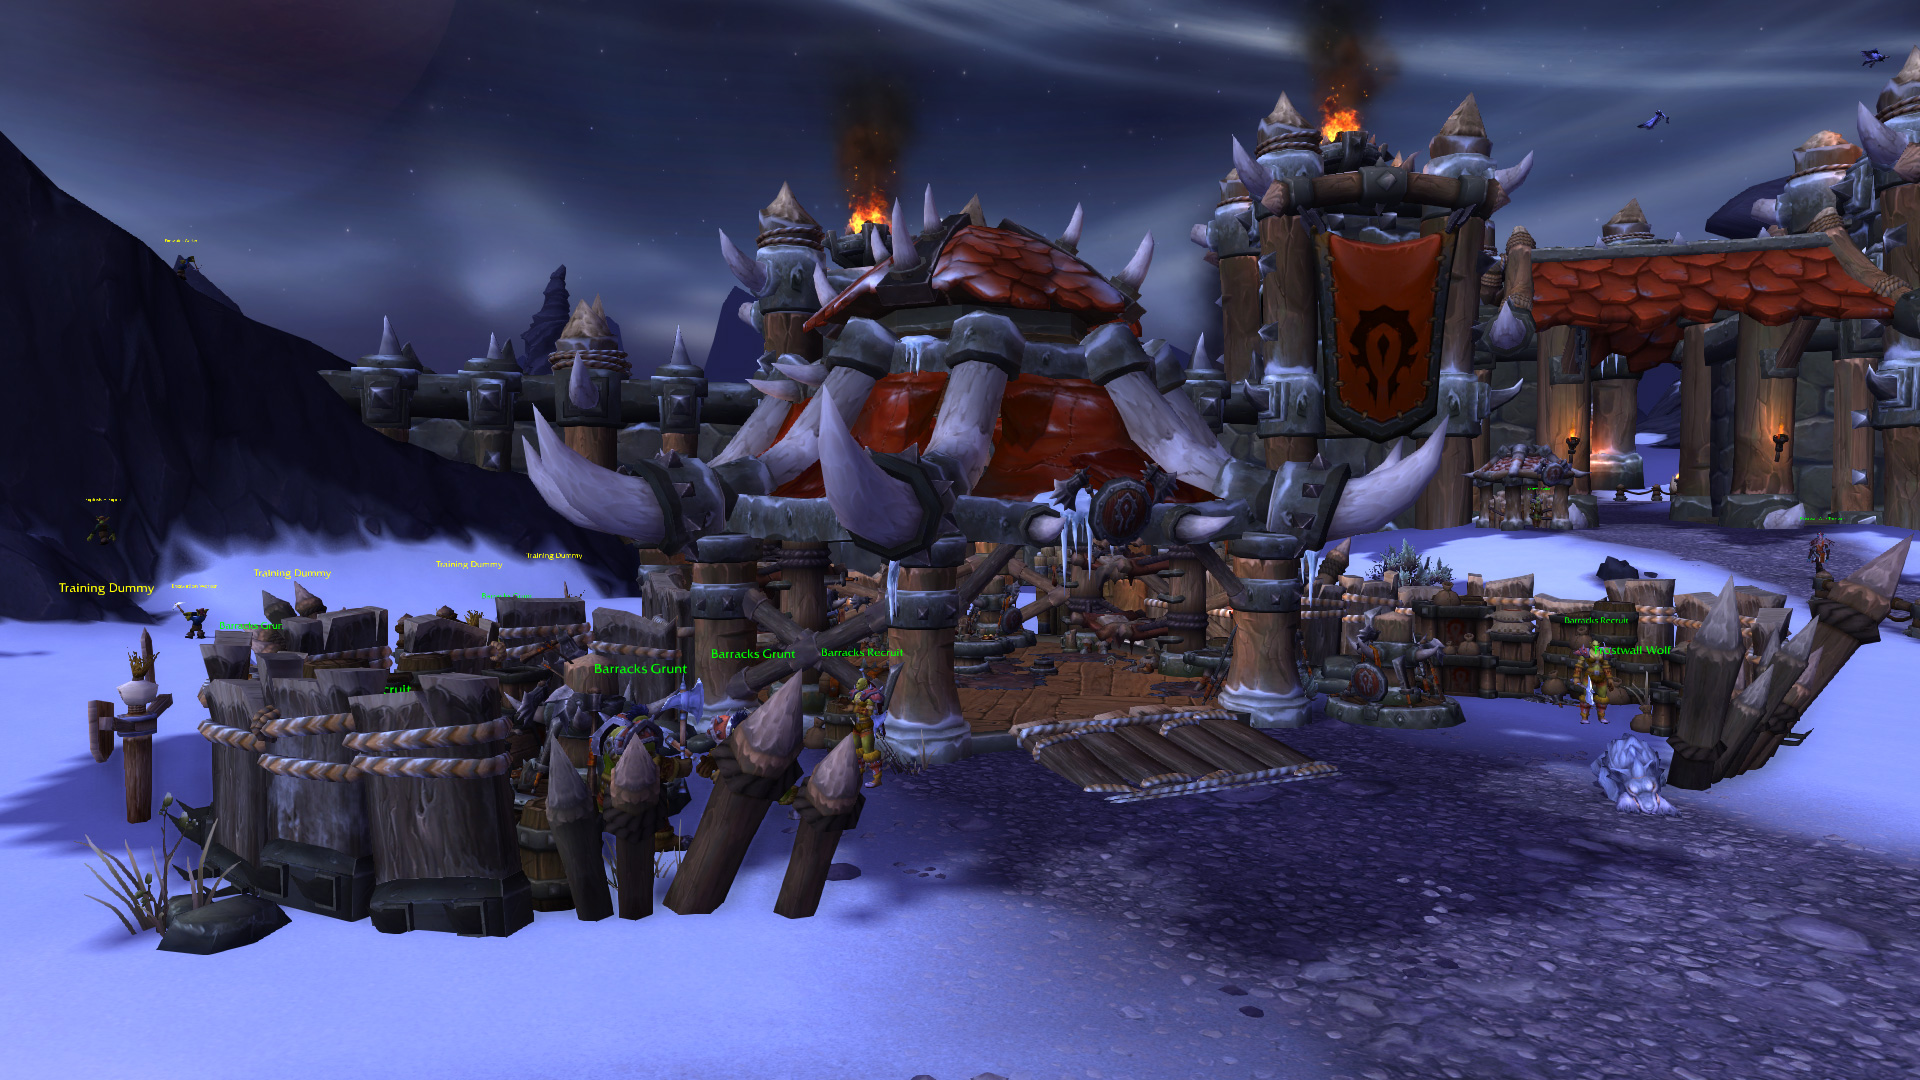 Rhyme and punishment forums view topic barracks mage tower image malvernweather Gallery